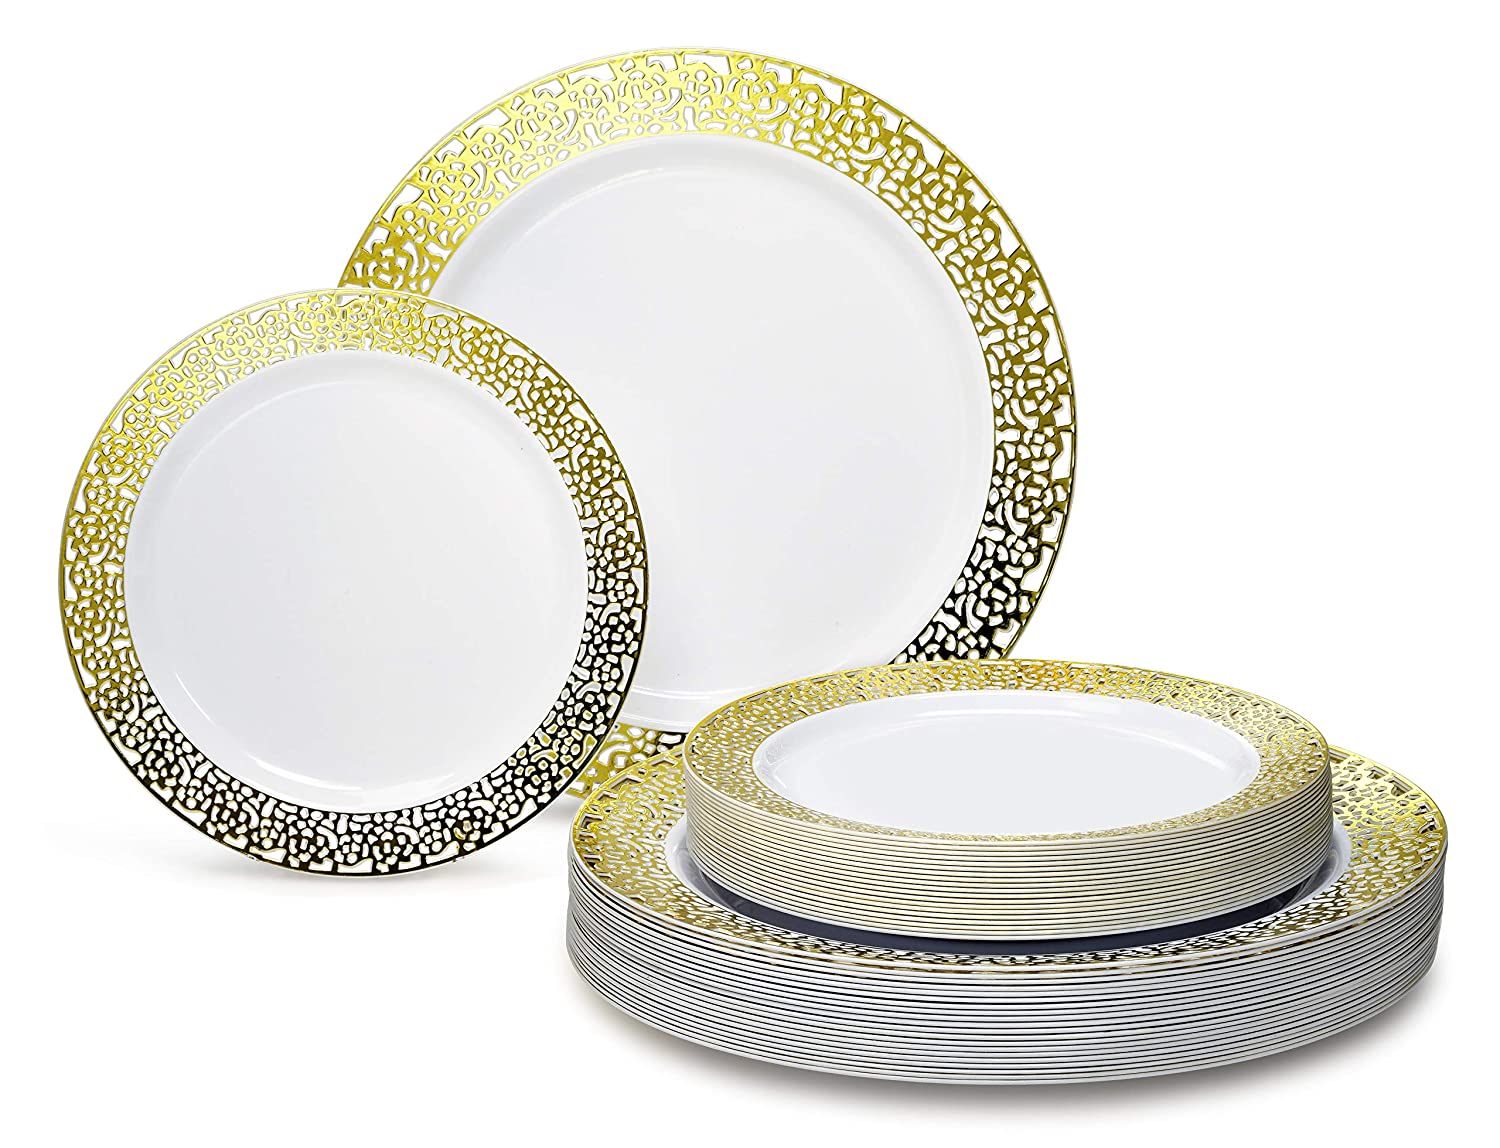 Florence Ivory   gold 50 piece set (25 guests) OCCASIONS 720 PCS   120 GUEST Wedding Disposable Plastic Plate and Silverware Combo Set (Diamond White Silver Plates, Silver Silverware)